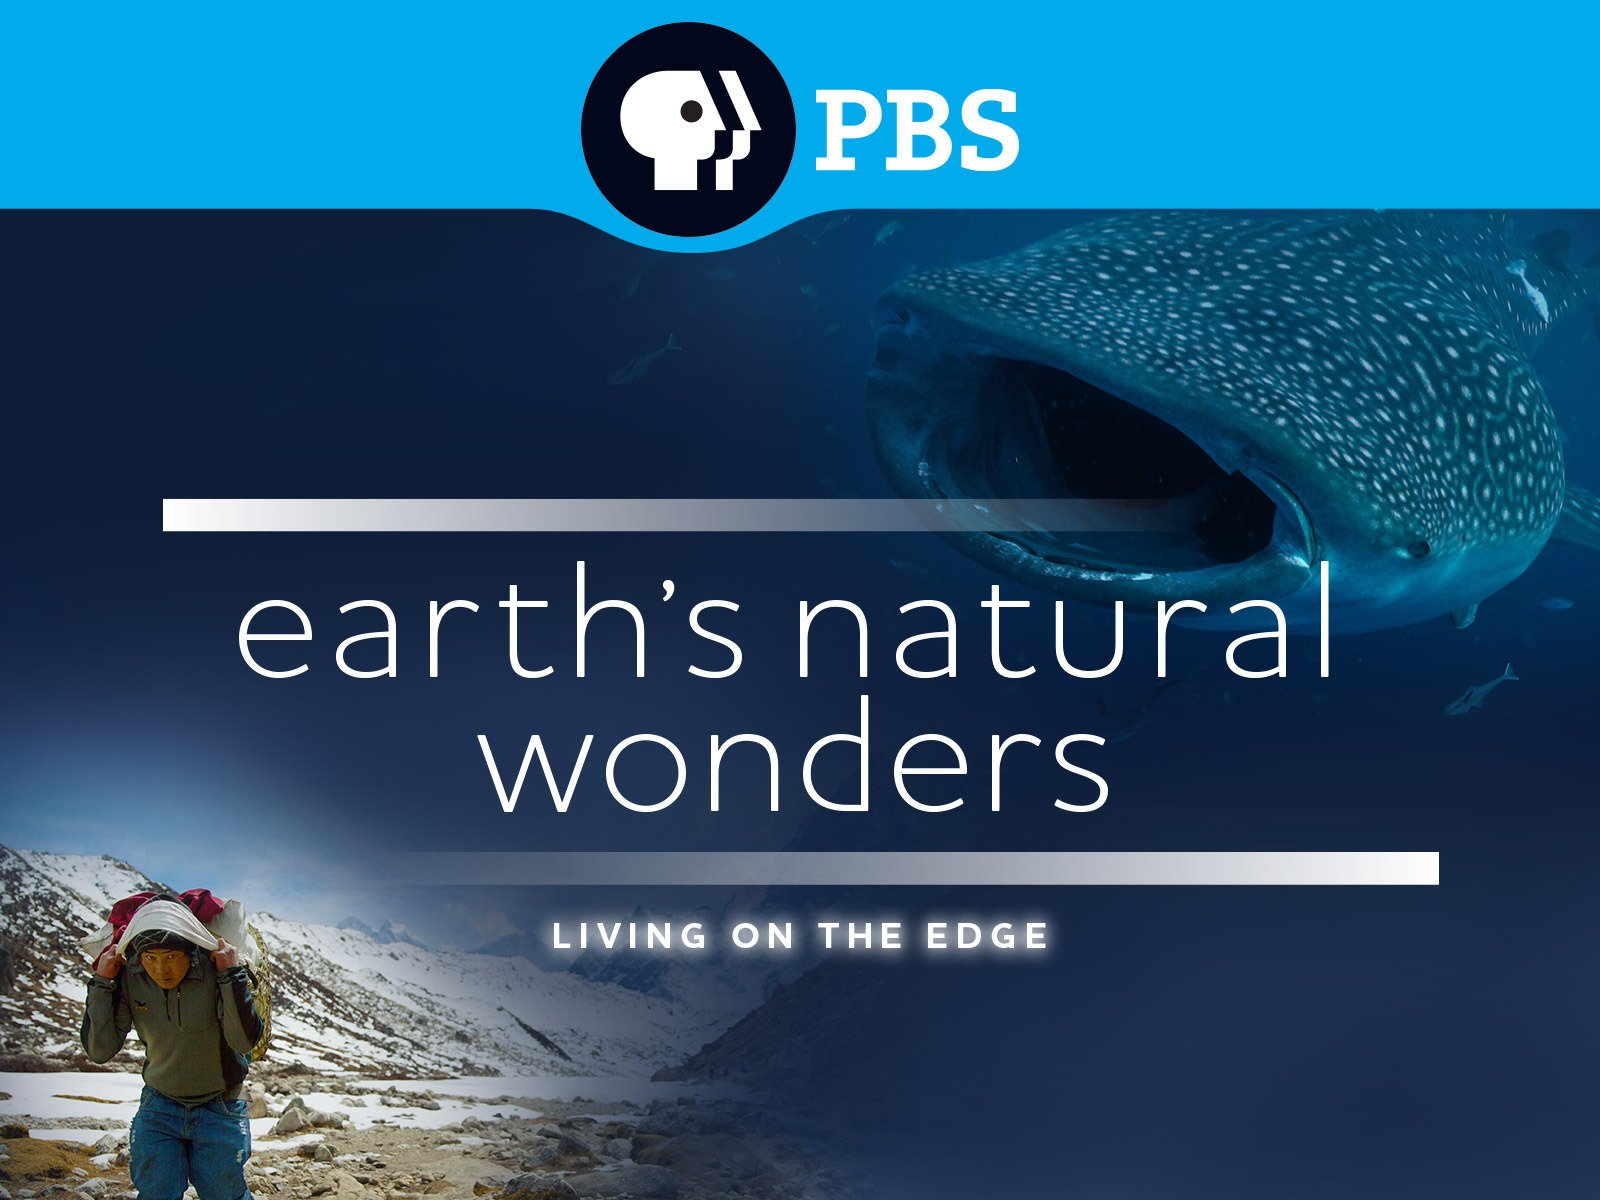 Amazon.com: Earths Natural Wonders Season 1: Matt Barrett, Nicholas Shoolingin-Jordan: Amazon Digital Services LLC